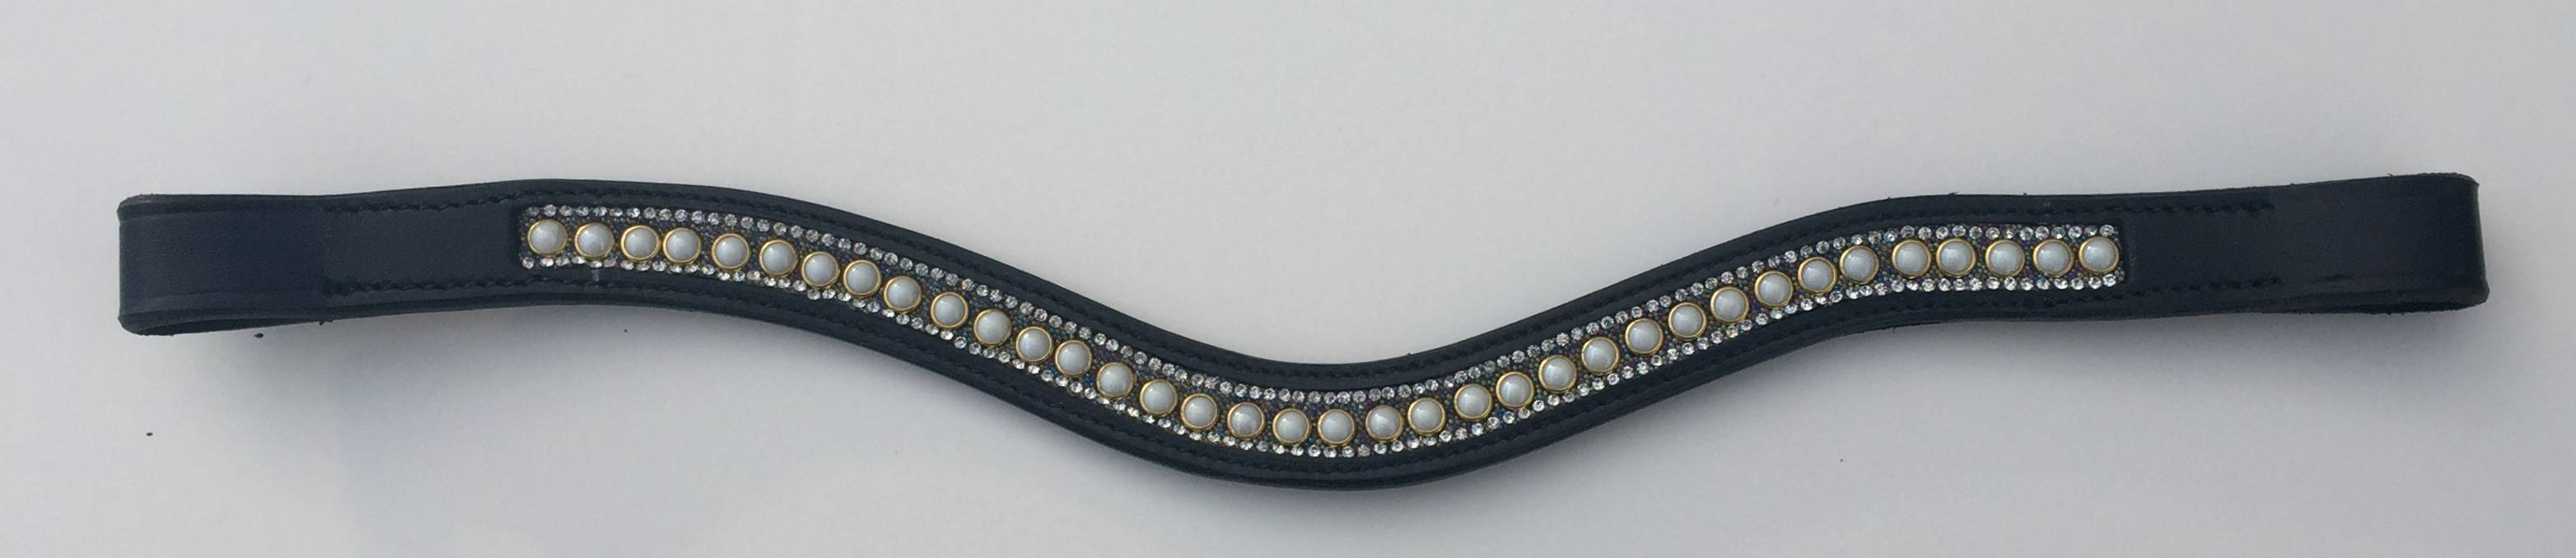 Nunn Finer Edith Browband